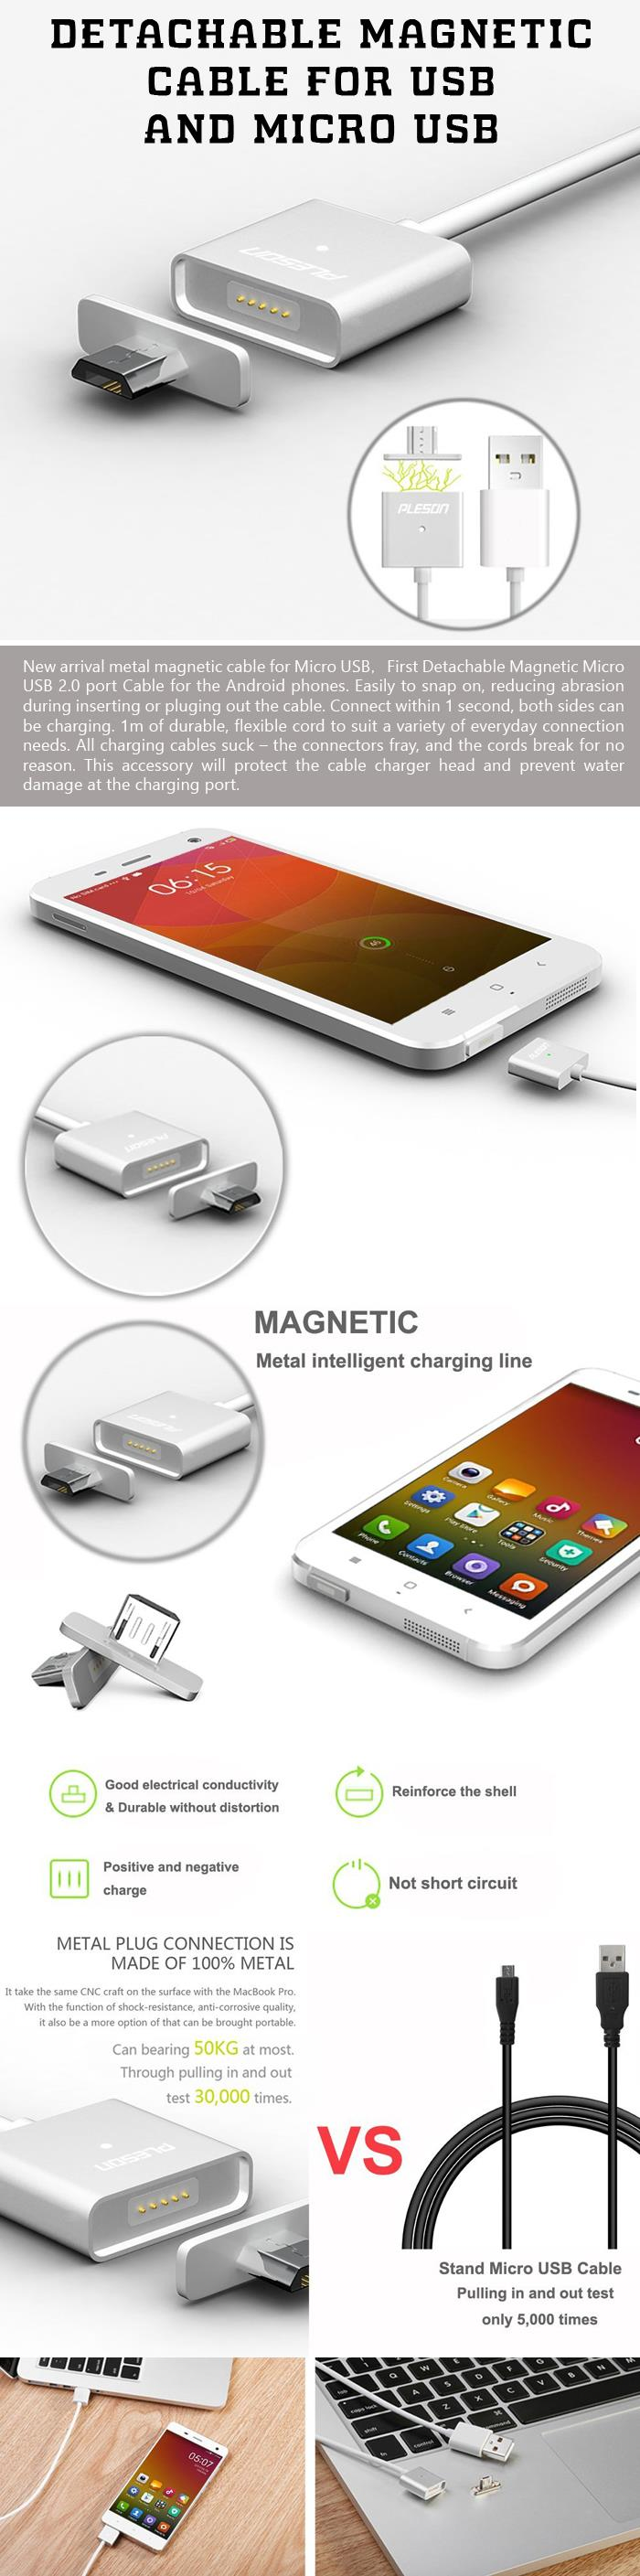 Detachable Magnetic Cable for USB and Micro USB